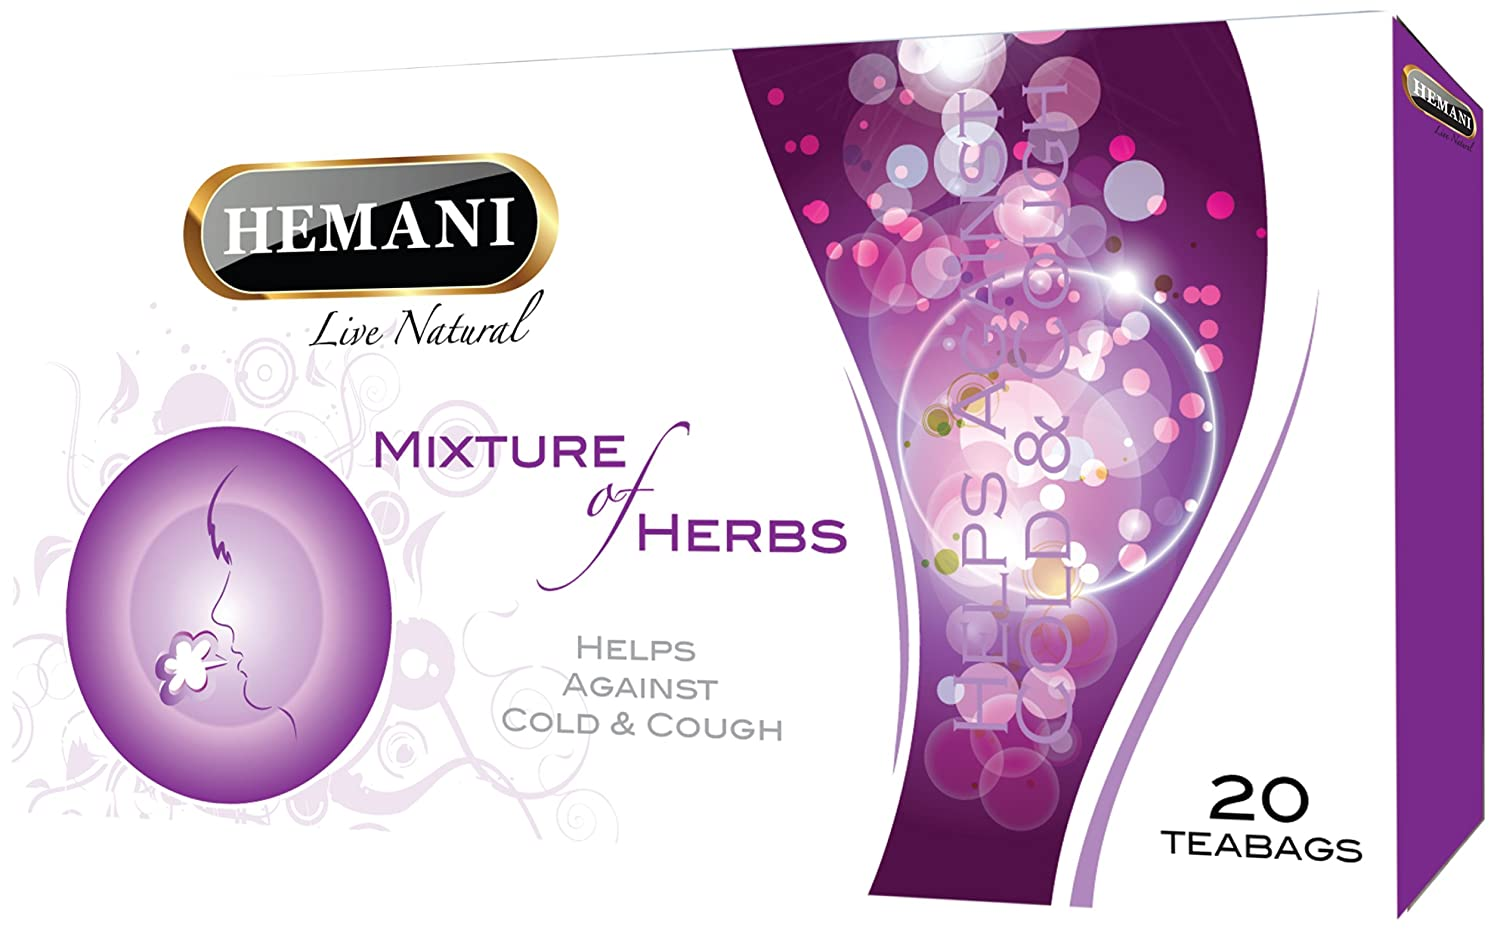 hermani cold and cough hermani